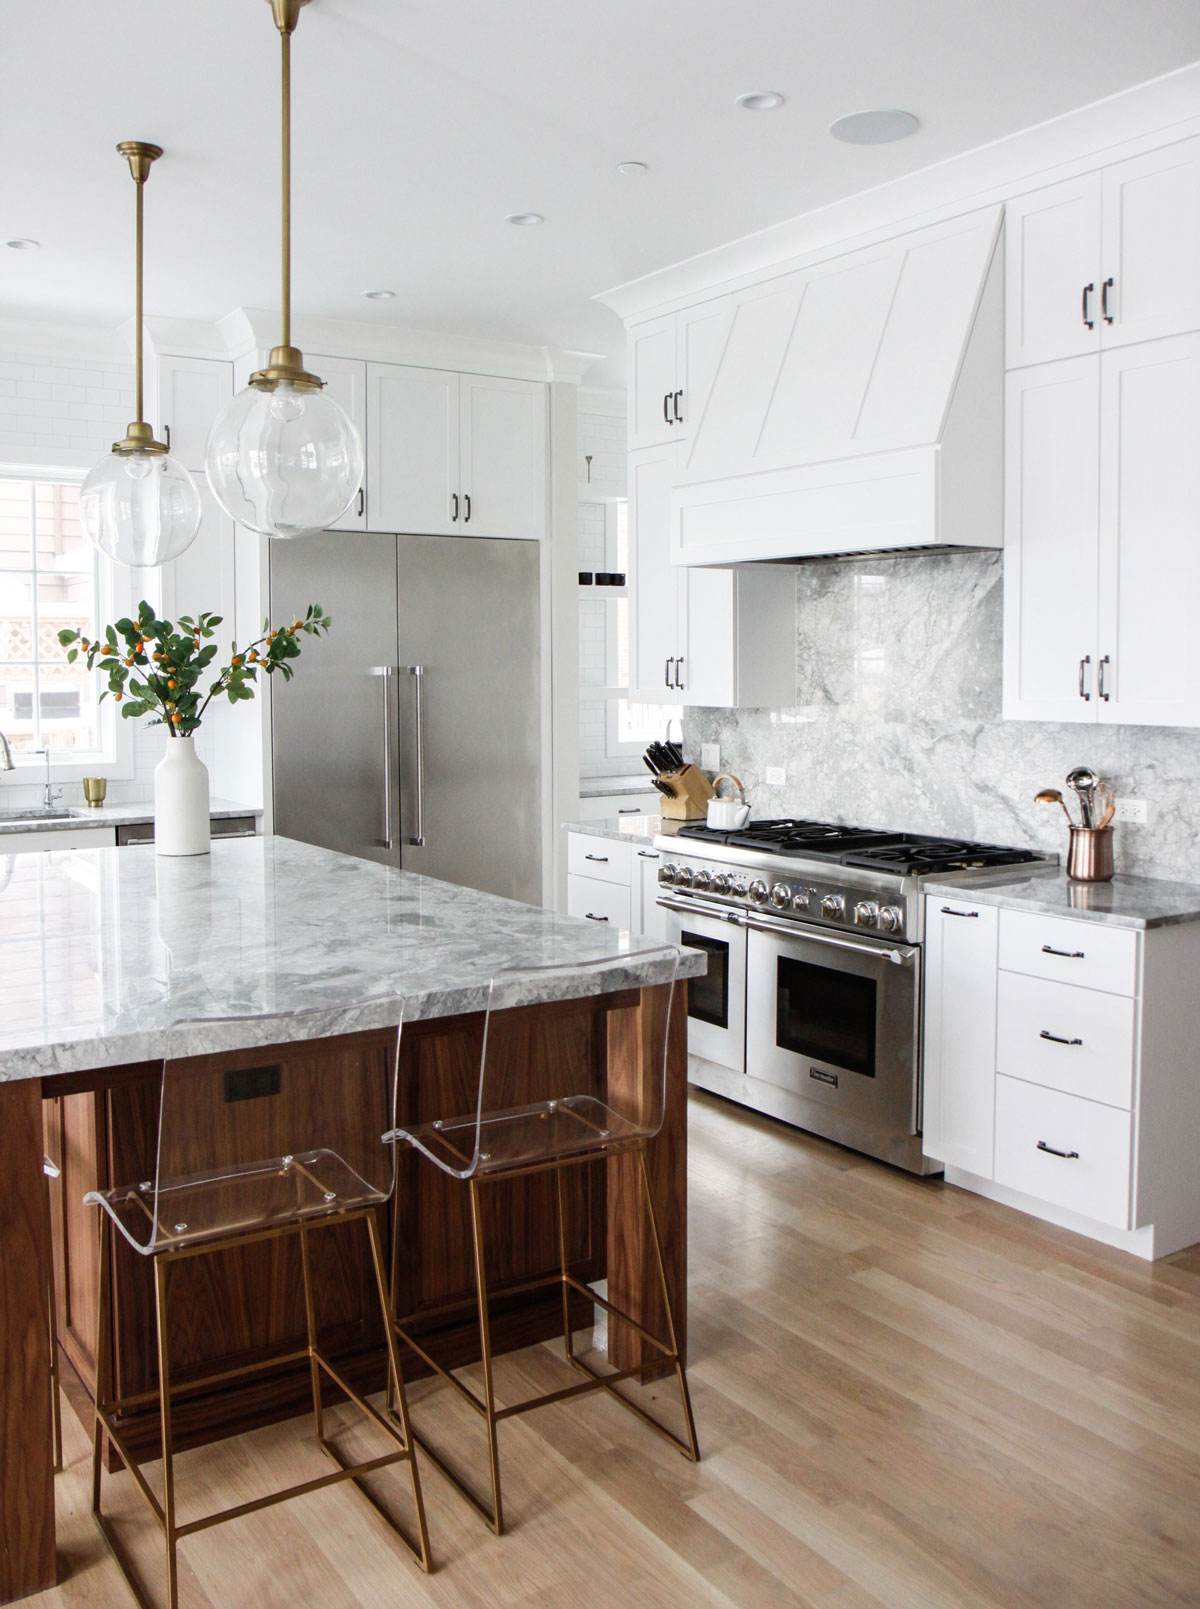 kitchen pendant lights space saver table and chairs tips for choosing installing la lisette white with wood tone island